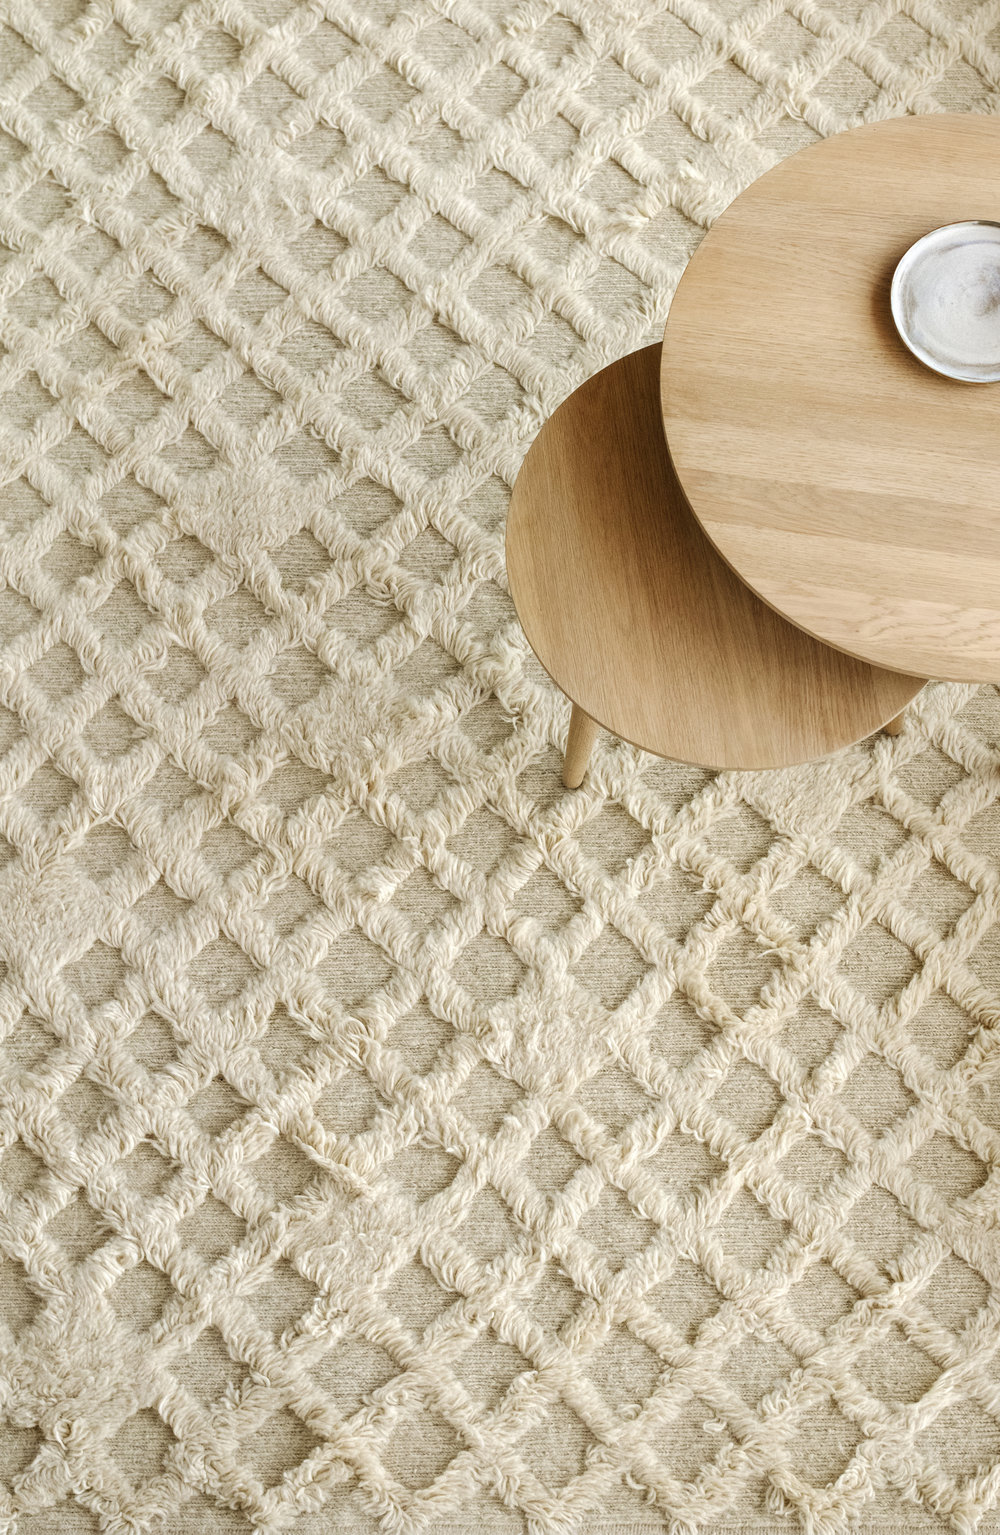 Armadillo_Rugs_LatitudeCollection_BerberKnot_Ghan_Insitu_01.jpg